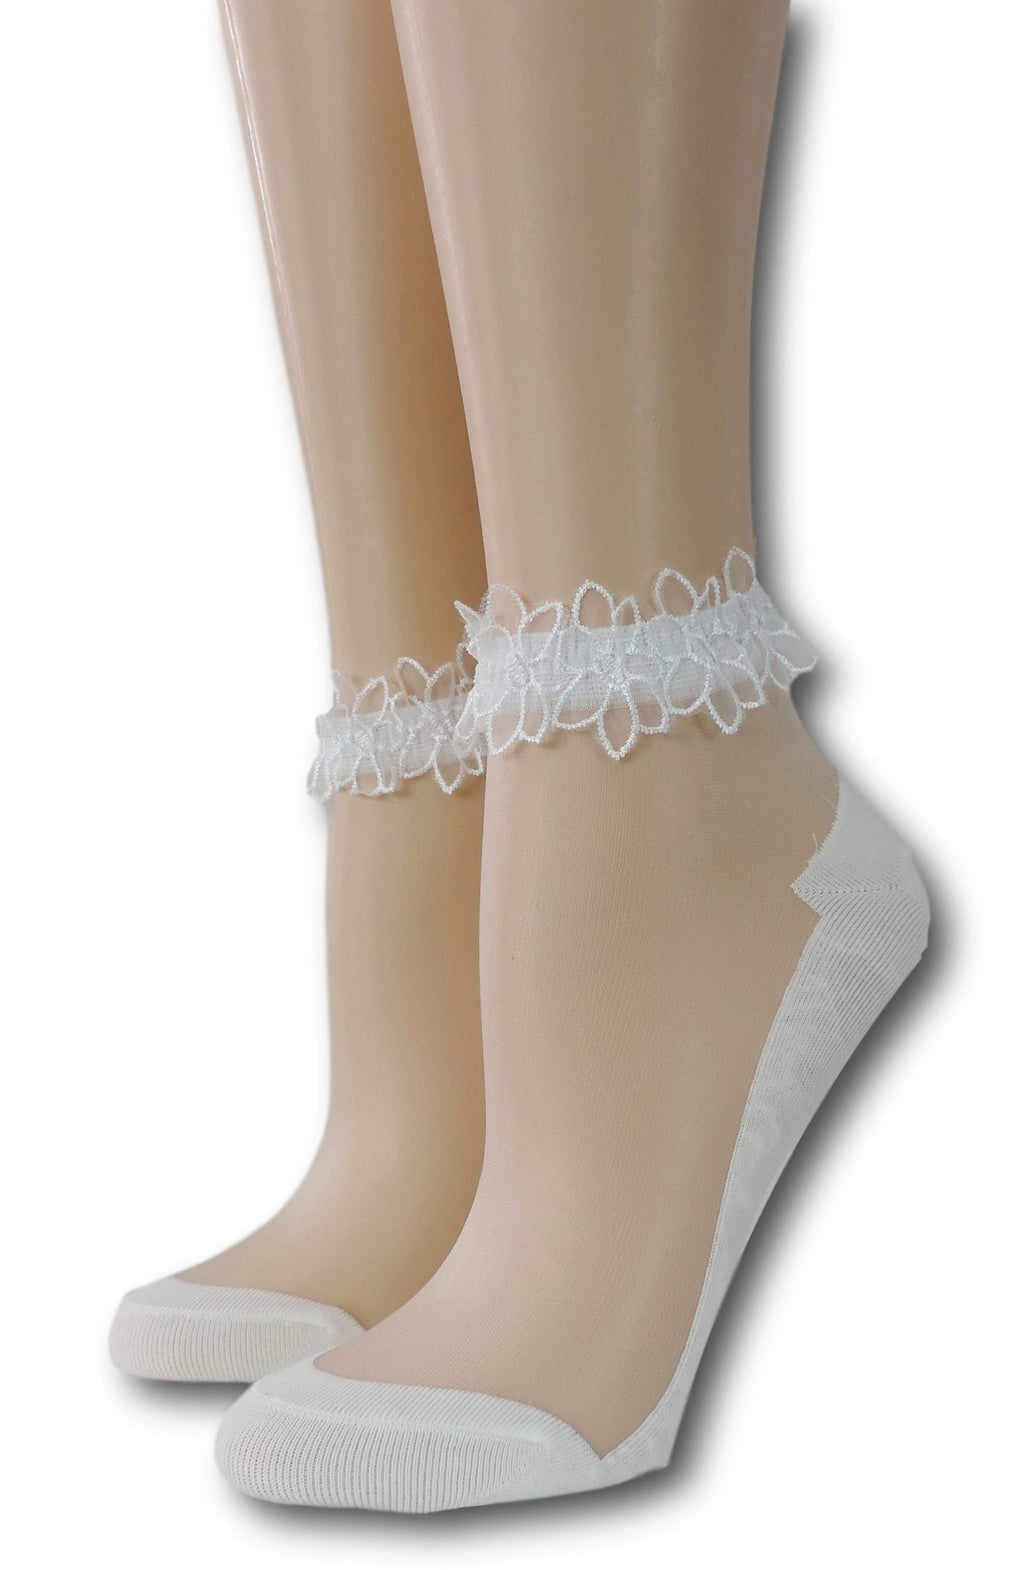 Bright White Ankle Sheer Socks